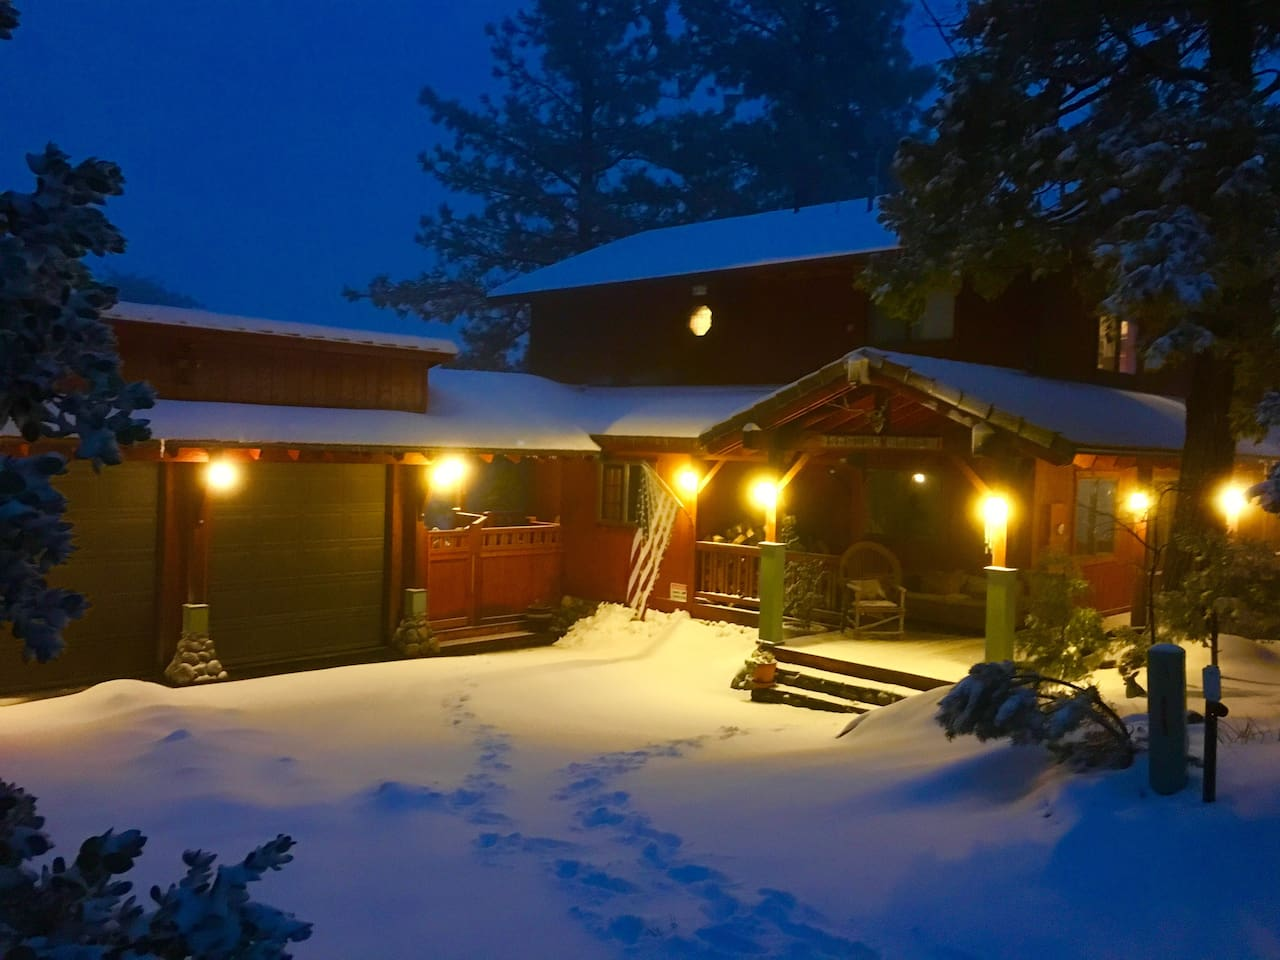 Entrance to Lookout Lodge in the snow